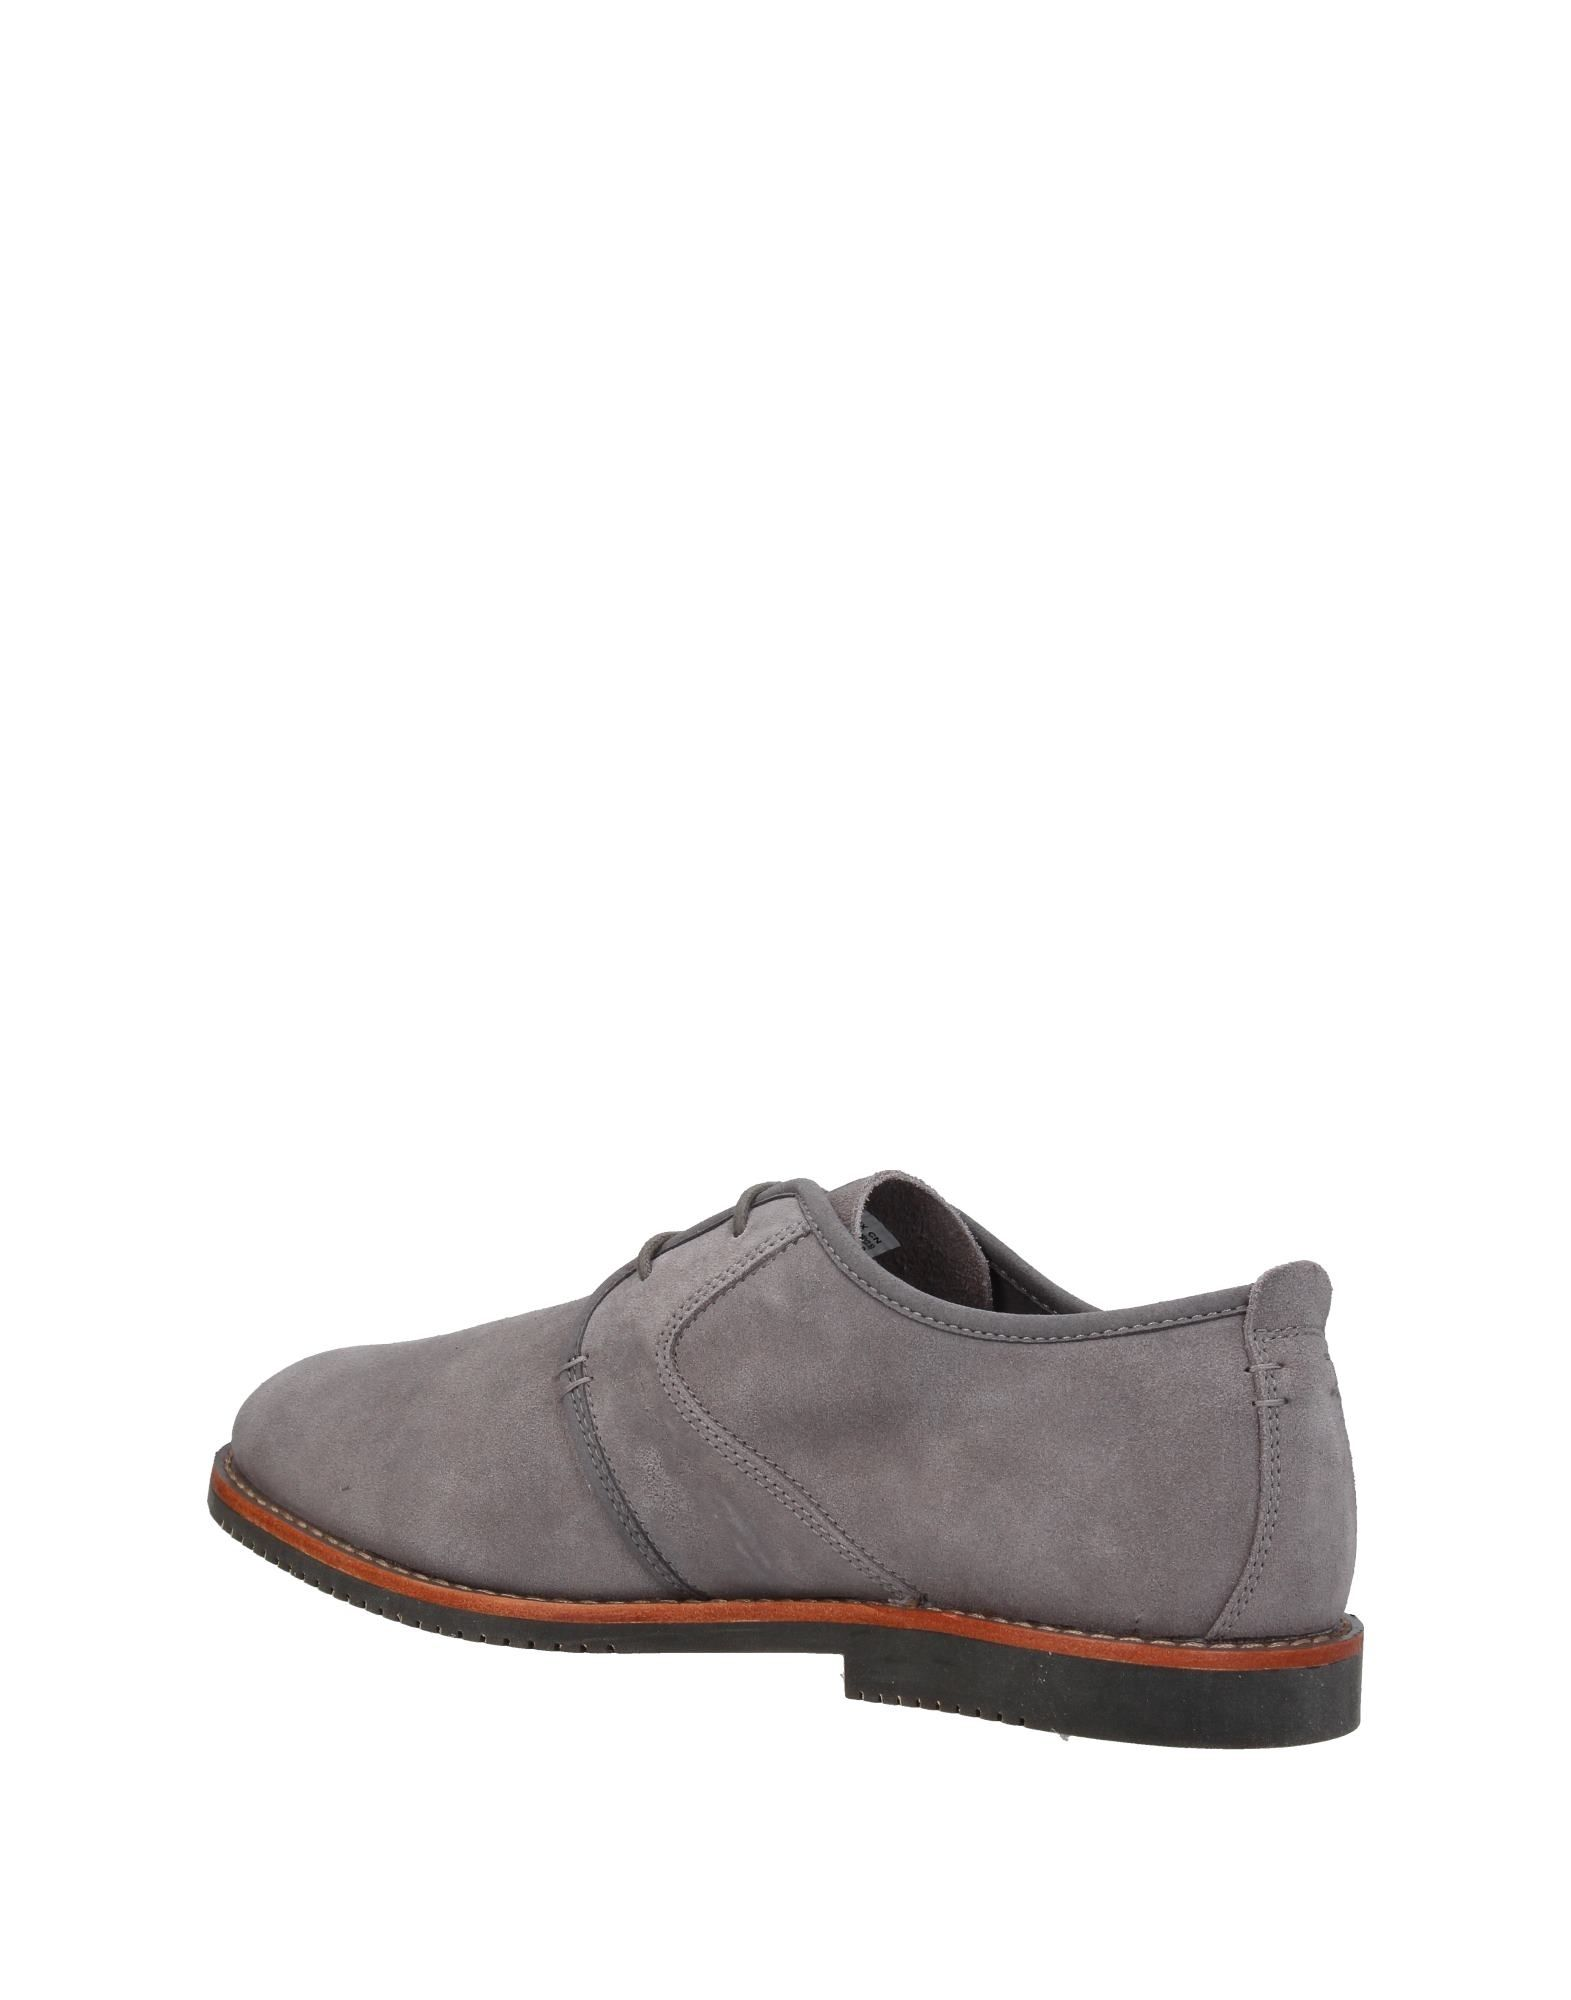 À Chaussures Chaussures Timberland Lacets Timberland À Homme Chaussures Lacets Lacets À Homme wUCx4qAX4